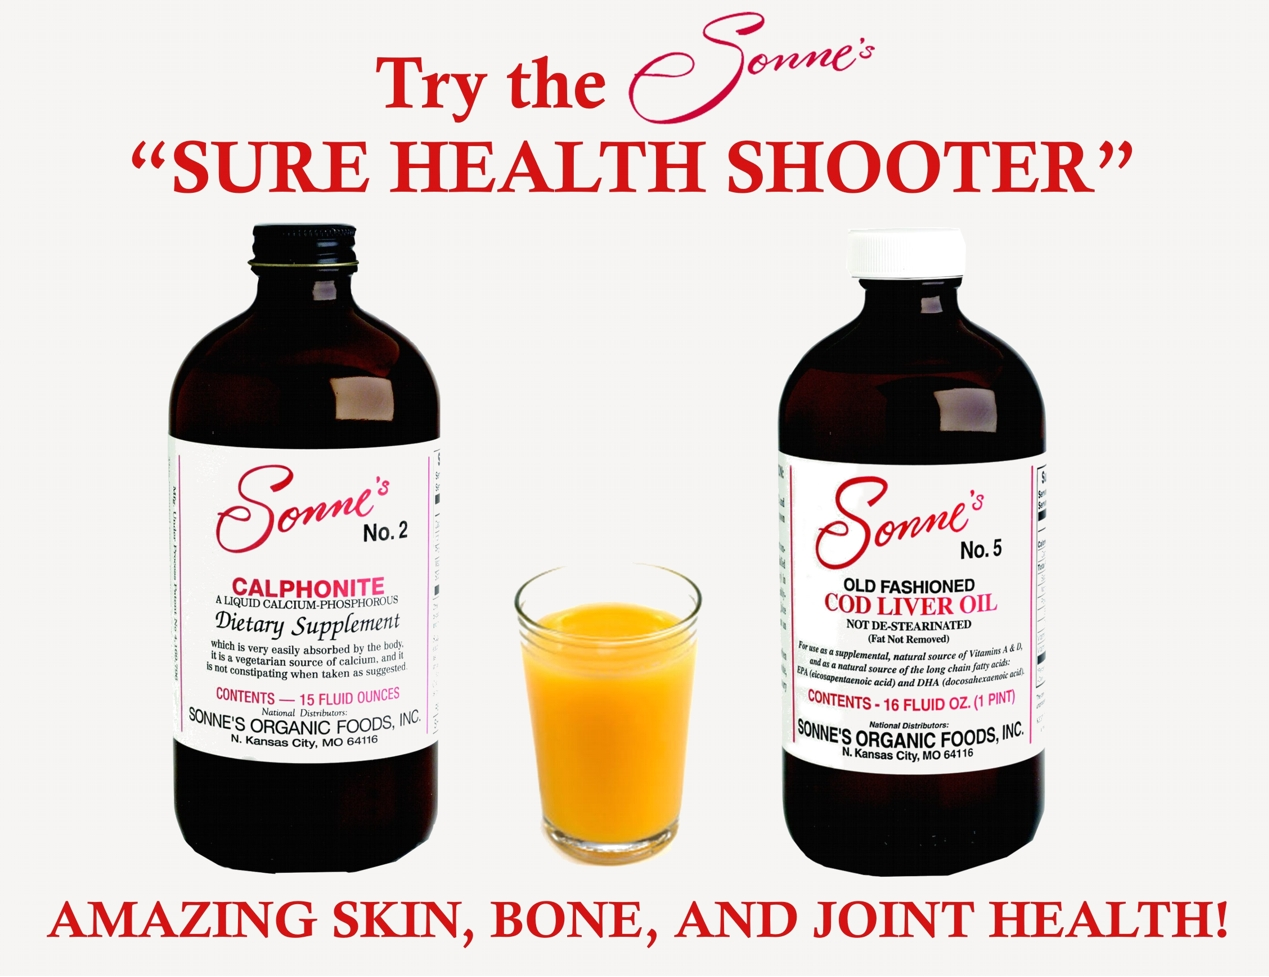 sure-health-shooter-grey-sm.jpg